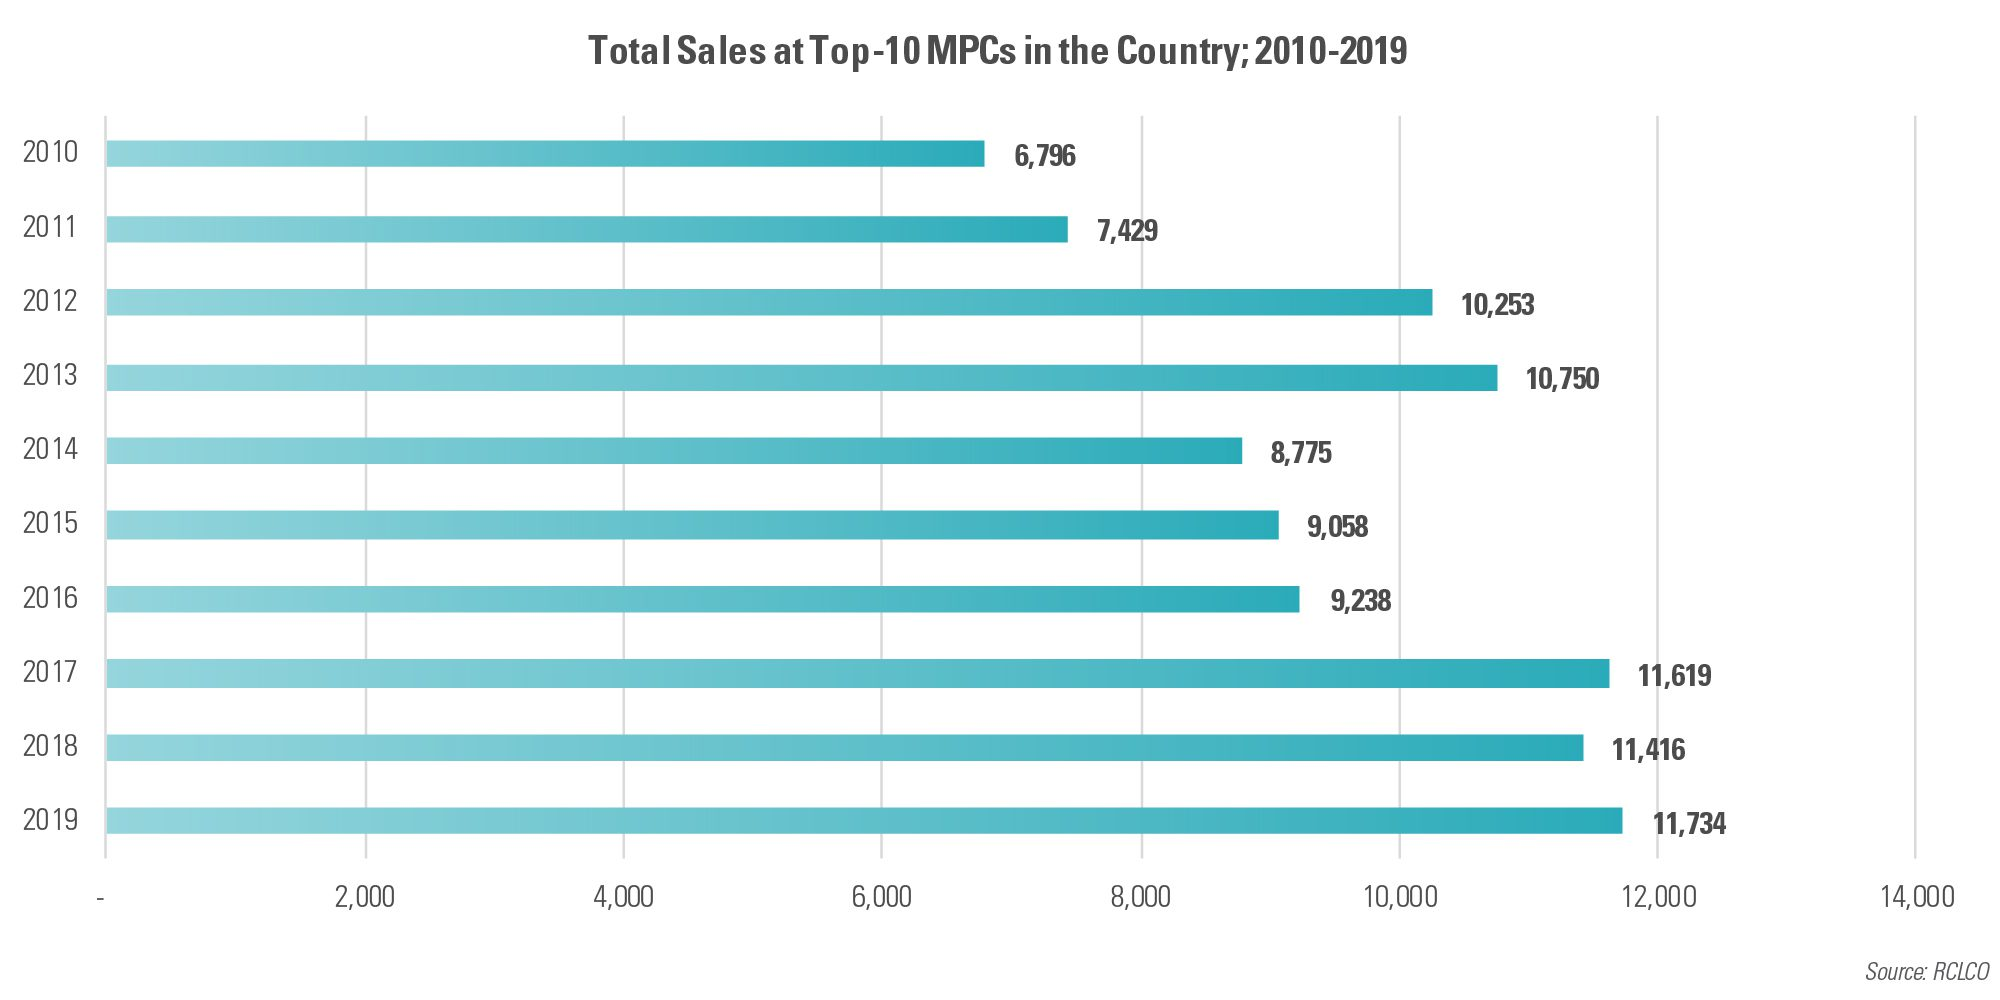 Total Sales at Top-10 MPCs in the Country; 2010-2019